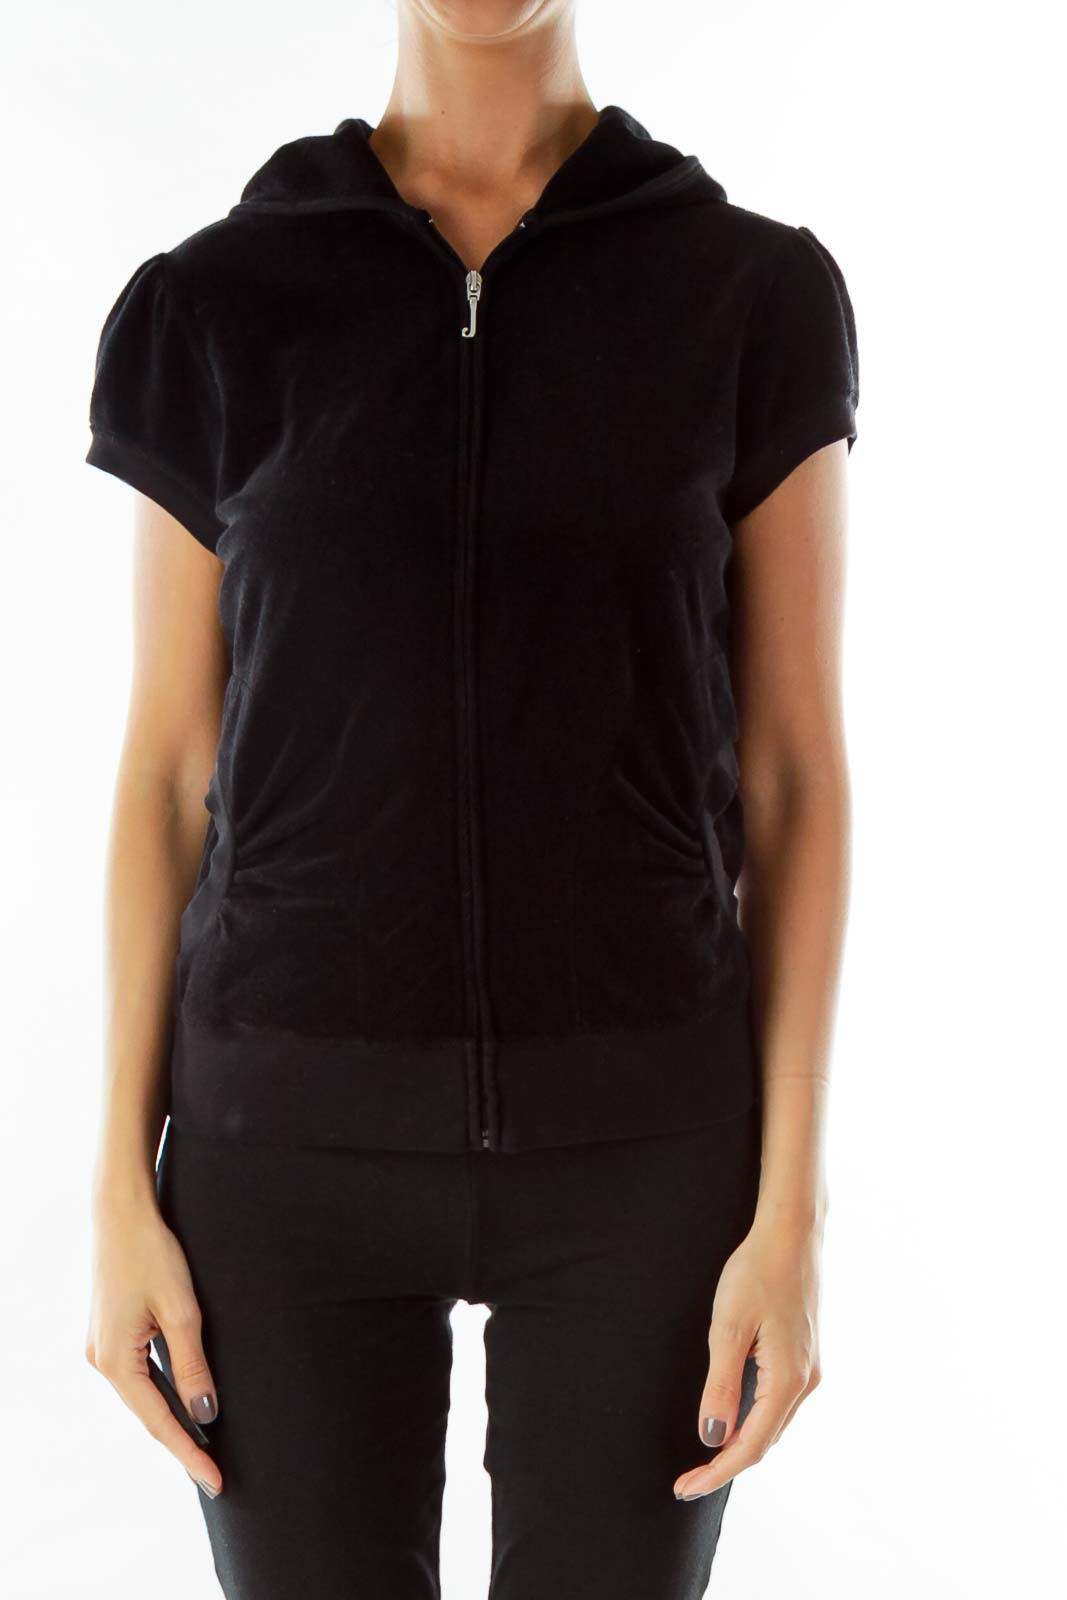 Black Hooded Short-Sleeve Jacket